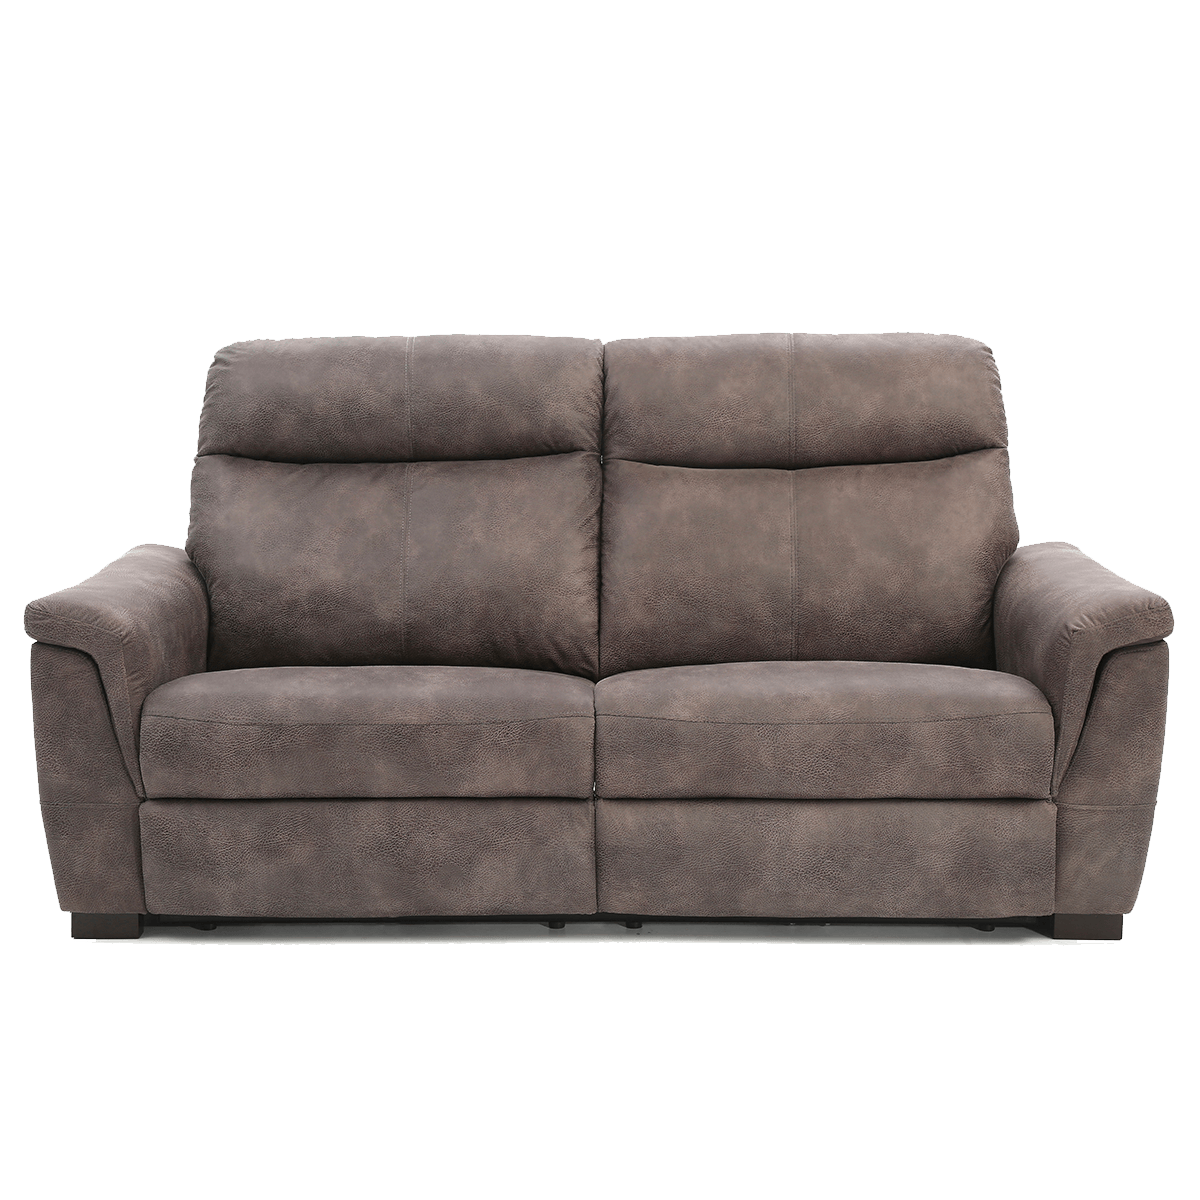 Sofa Vérone